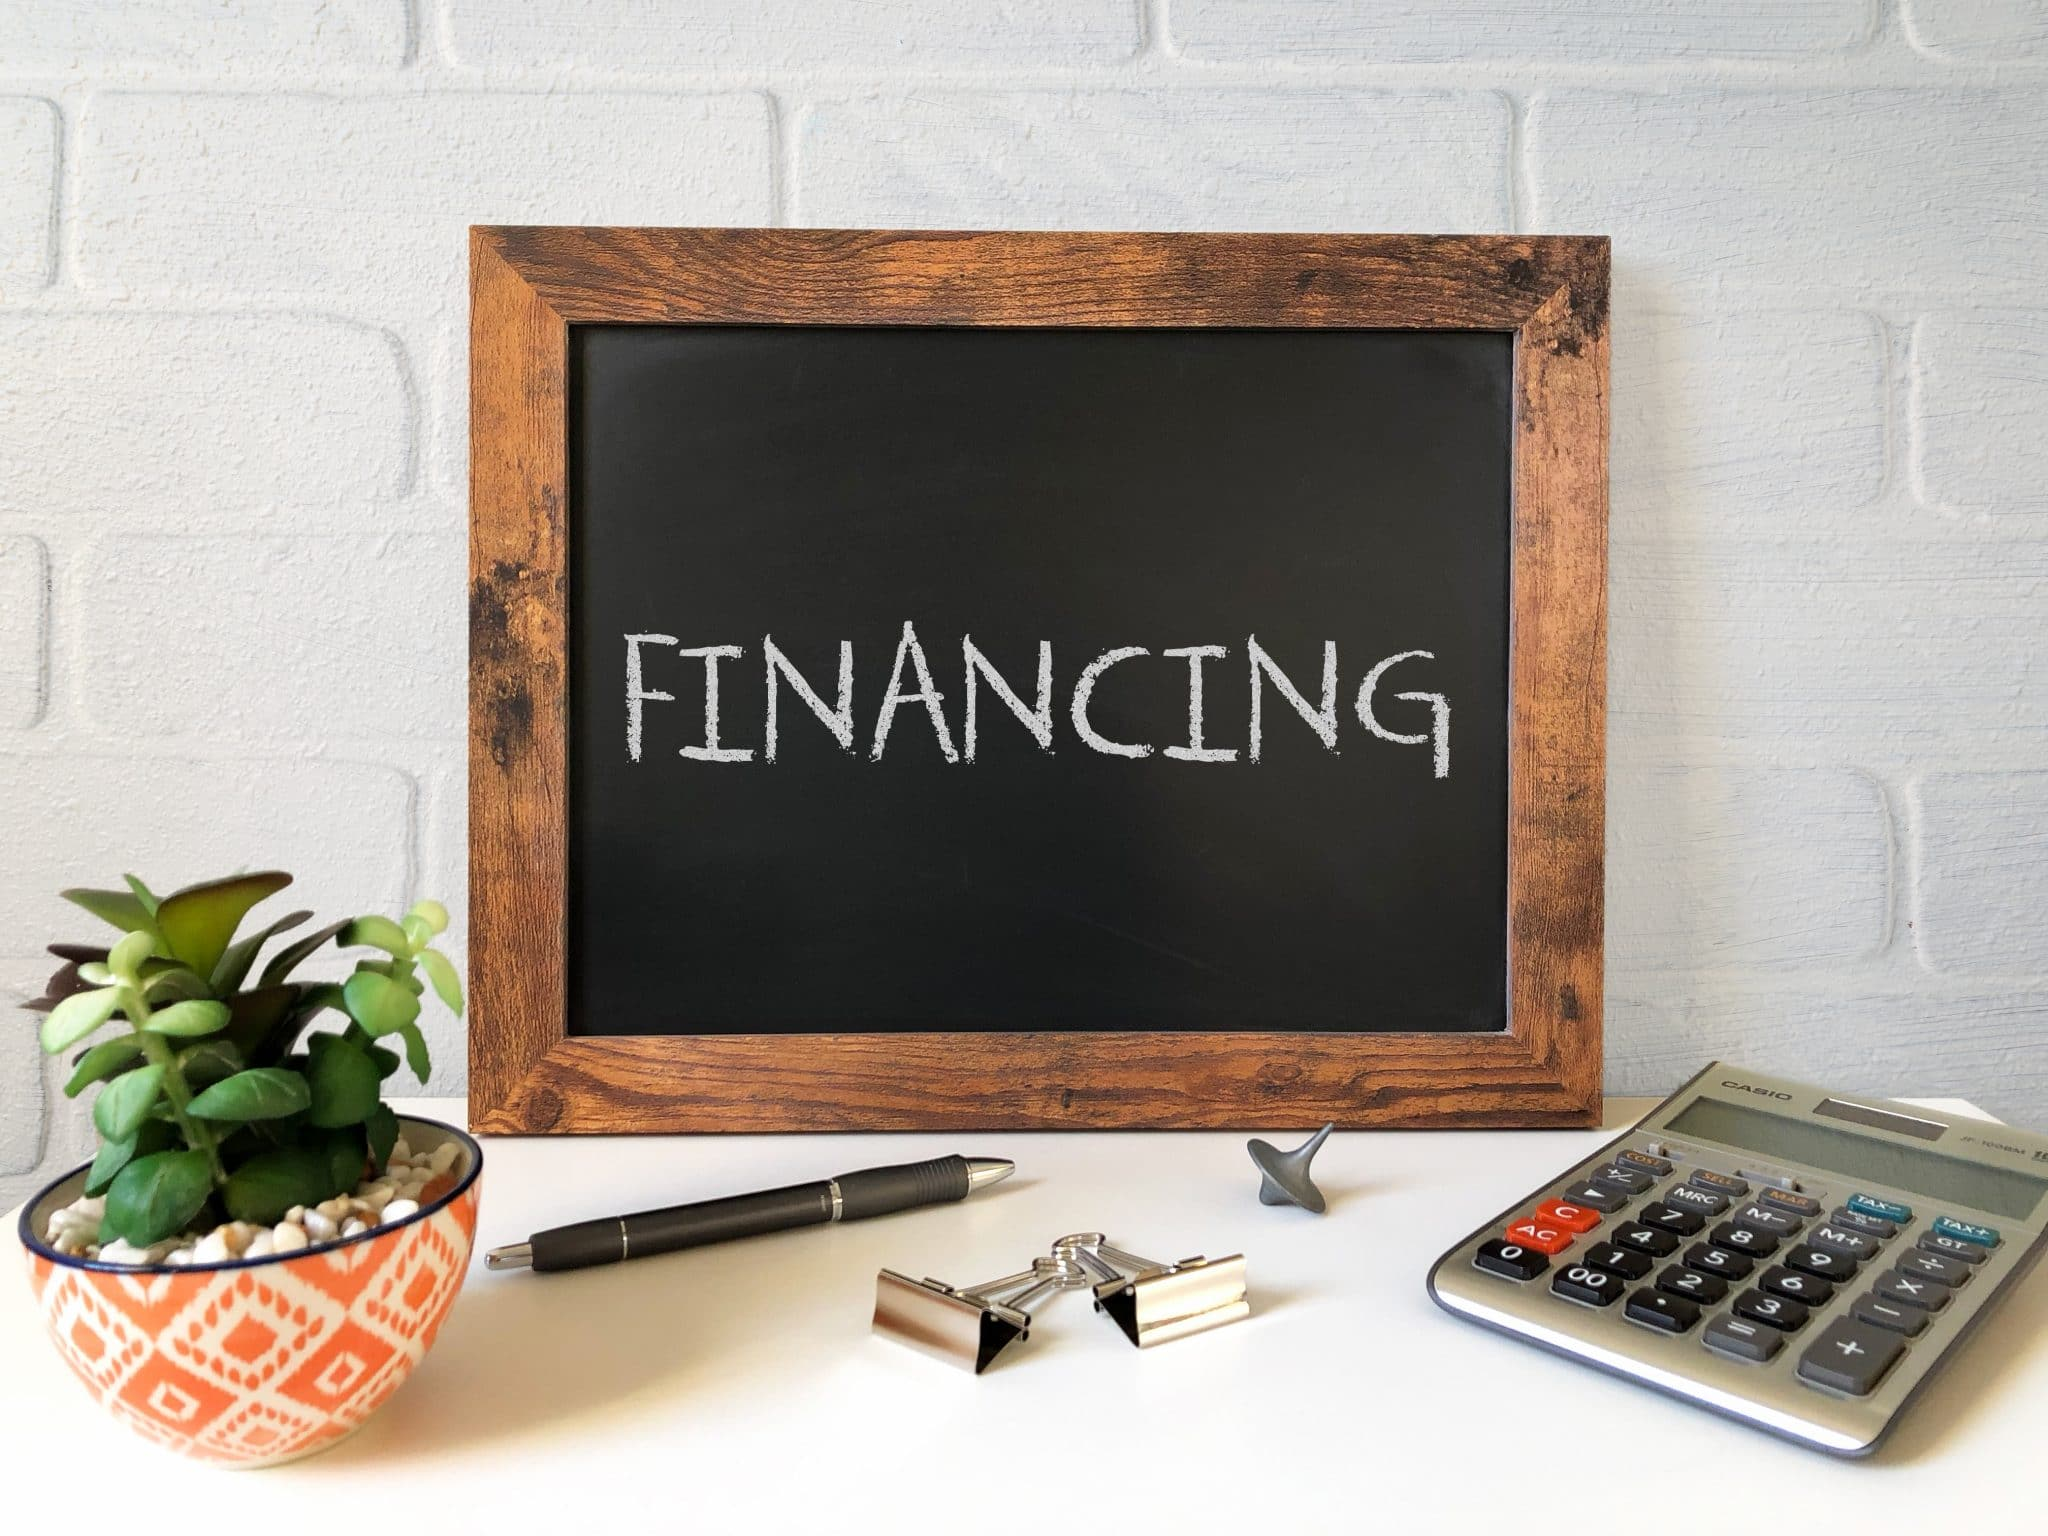 the word 'financing' written on a chalkboard that is sitting on a desk with a calculator and a pen